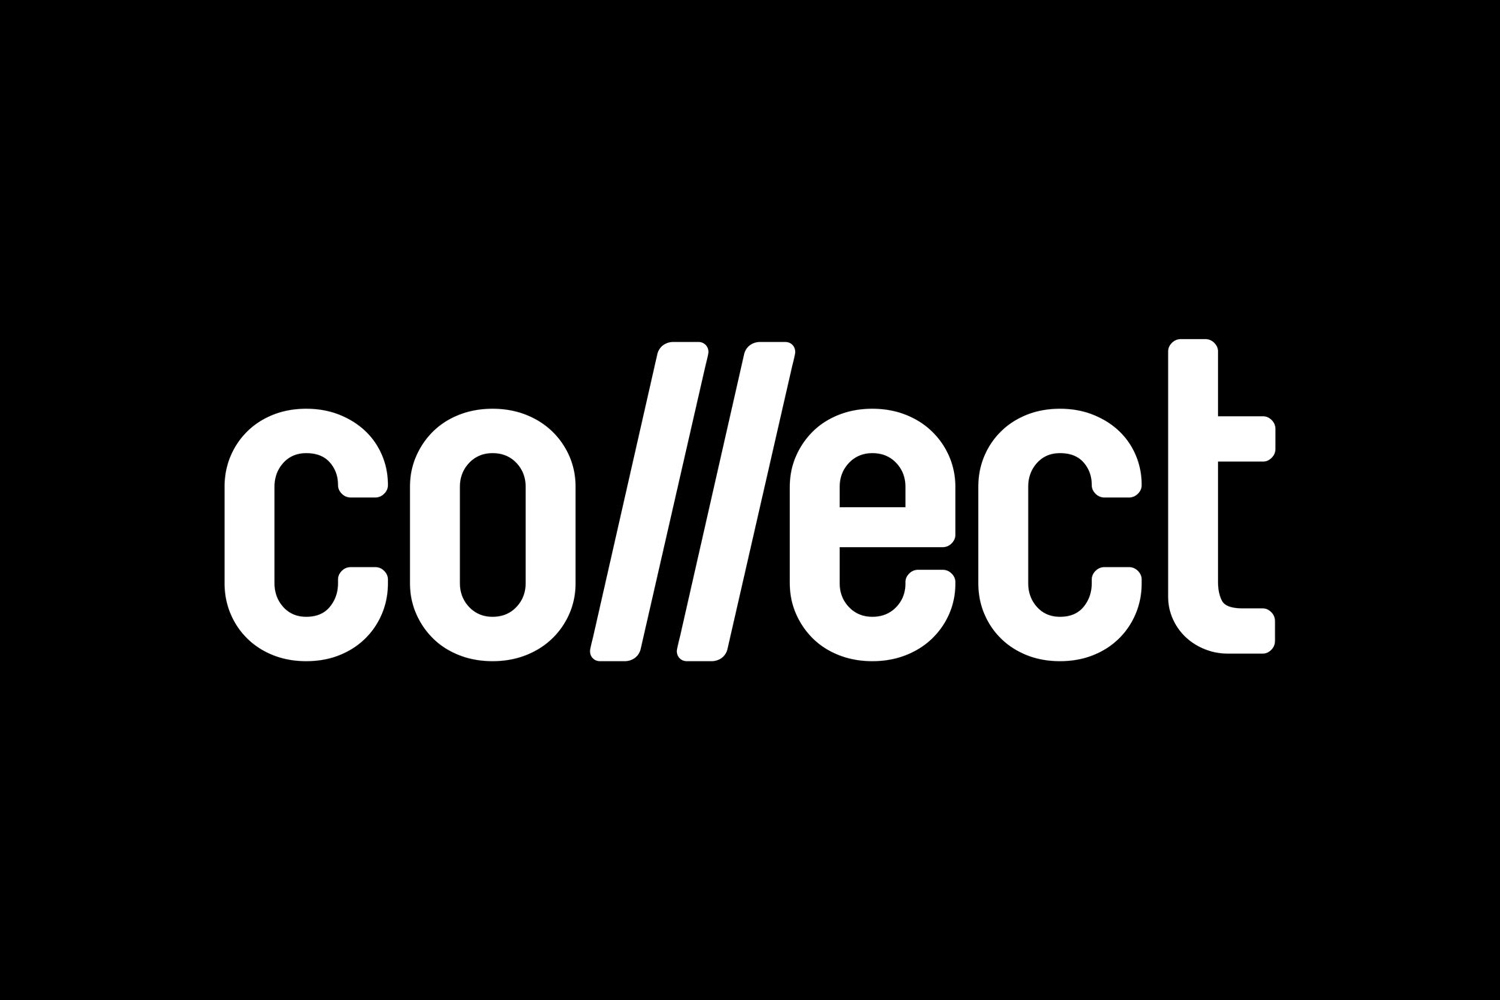 Wordmark for contemporary international art fair Collect, designed by Spin, London, UK